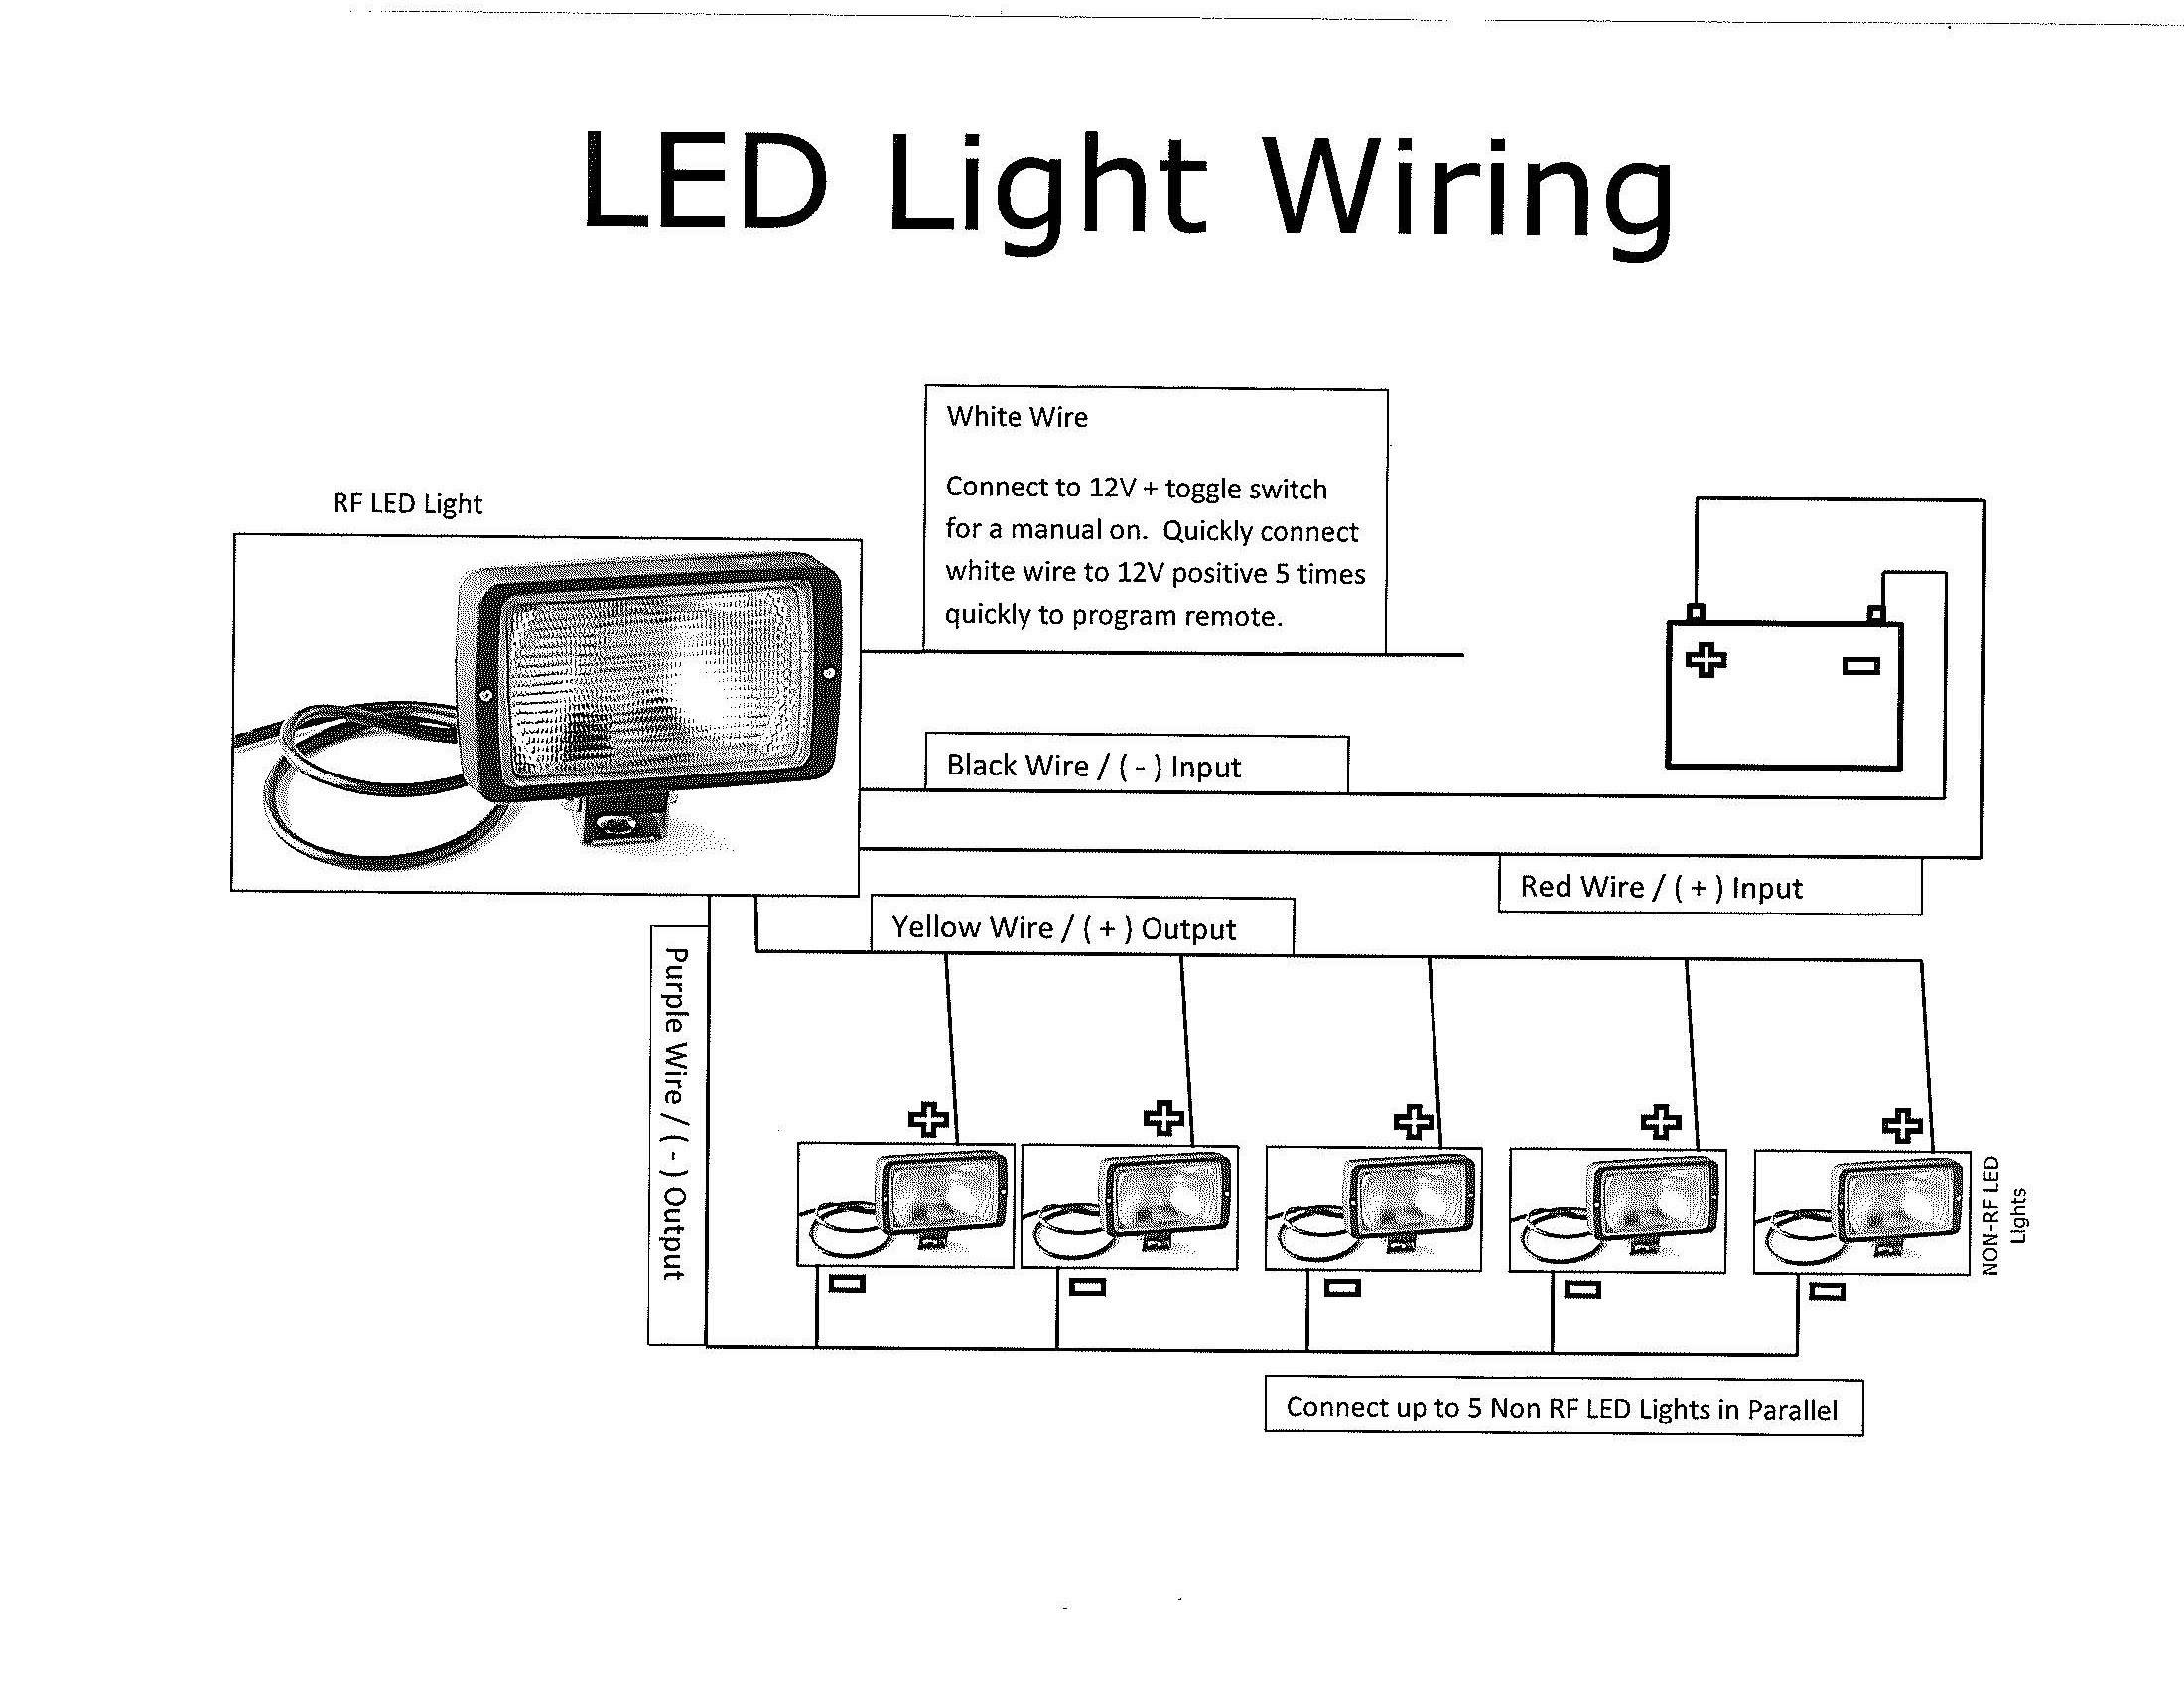 dazor lamp wiring diagram Download-Wiring Diagram Series Test Lamp Fresh Wiring Diagram For 12v Led 5-s